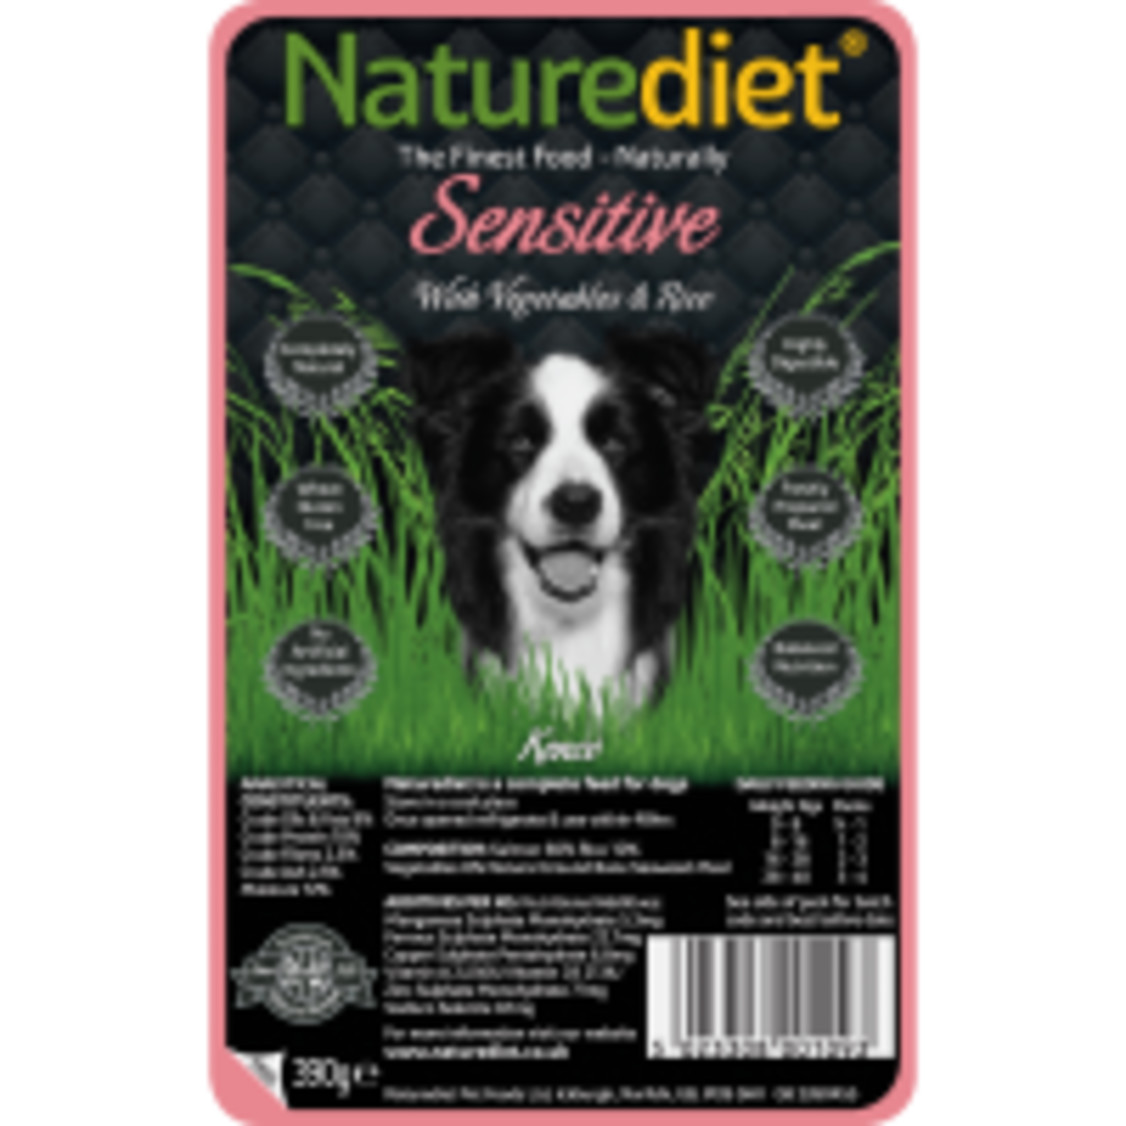 Naturediet Salmon Vegetables & Rice Sensitive